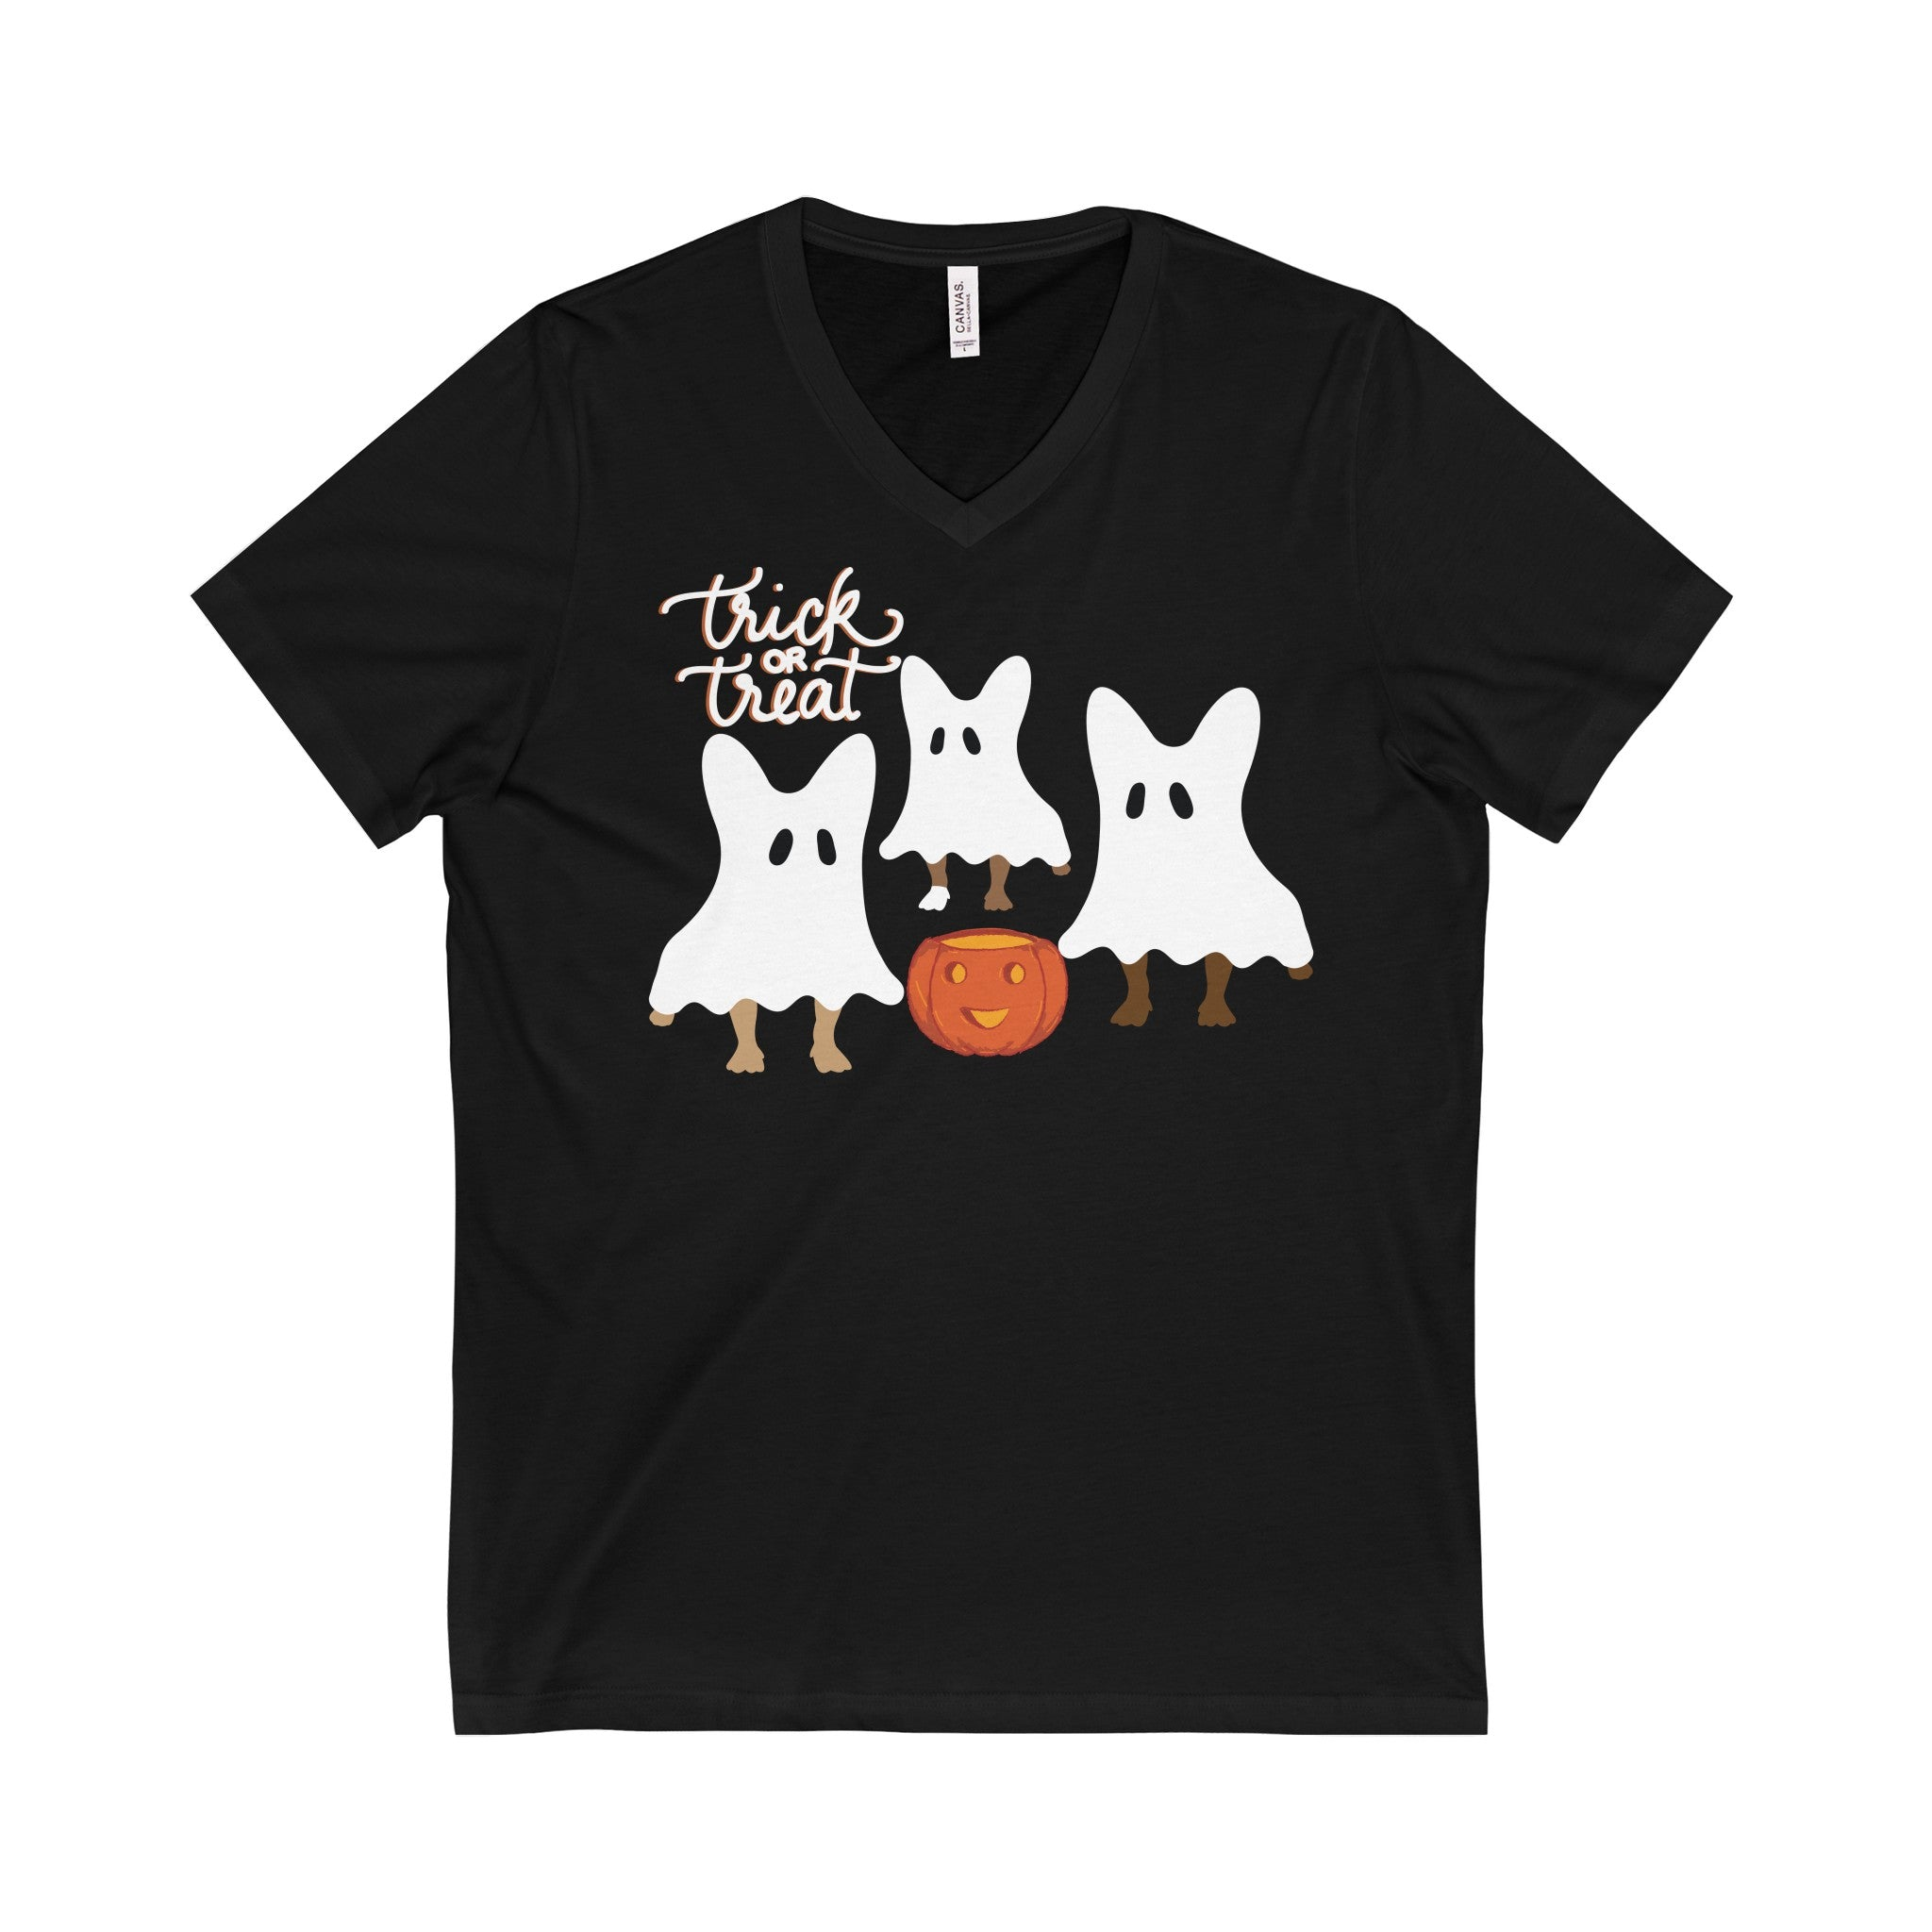 Trick or Treat Tee - Allthingsfrenchie LLC